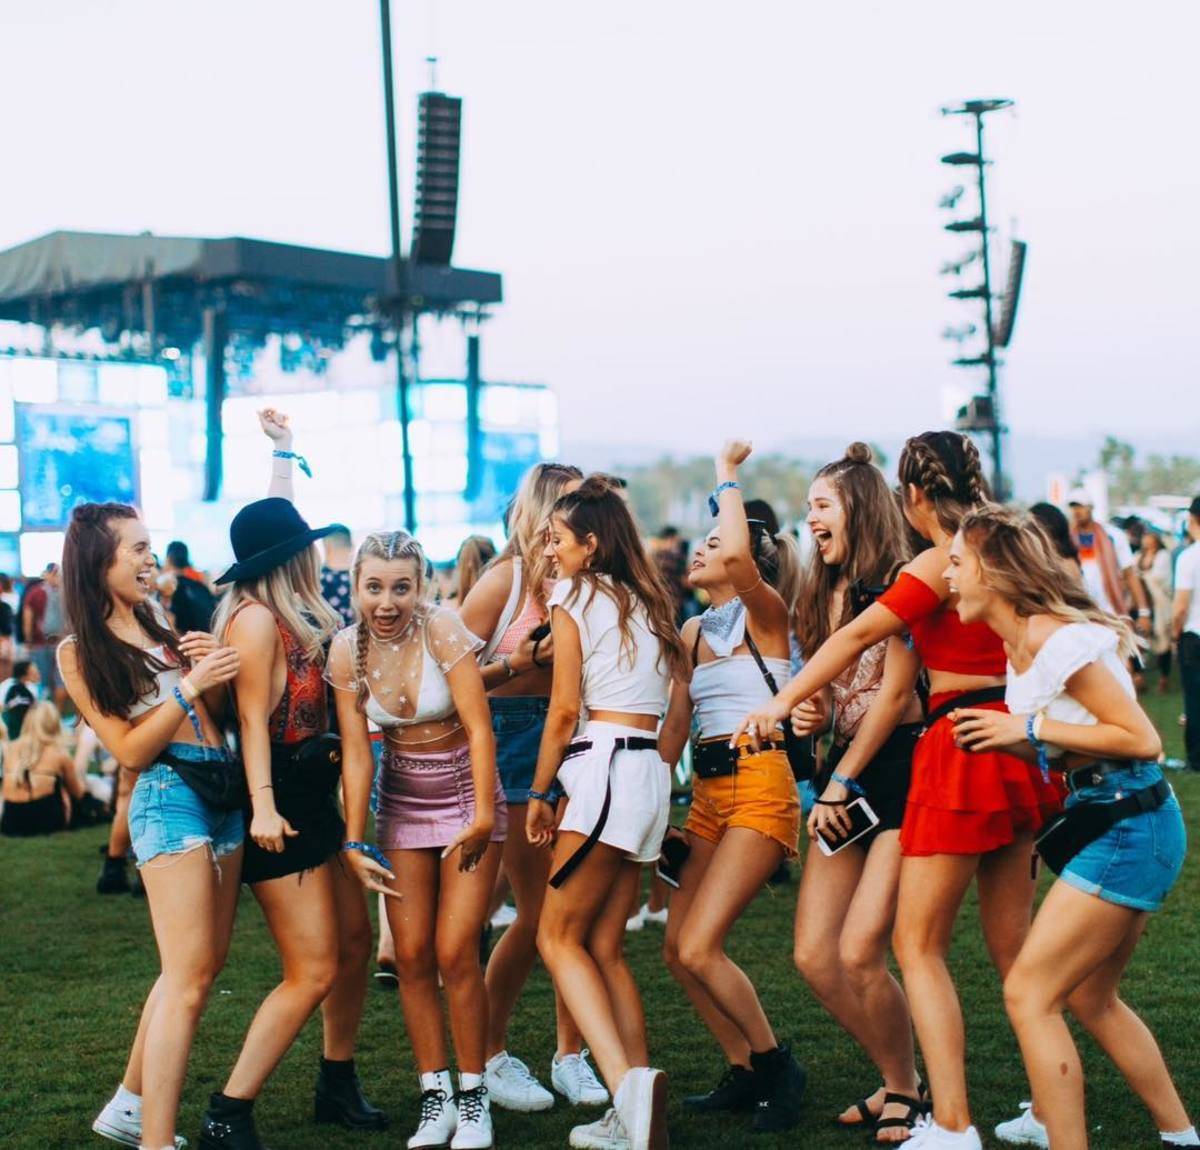 Dote Girls at Coachella. Photo: @doteshopping/Instagram